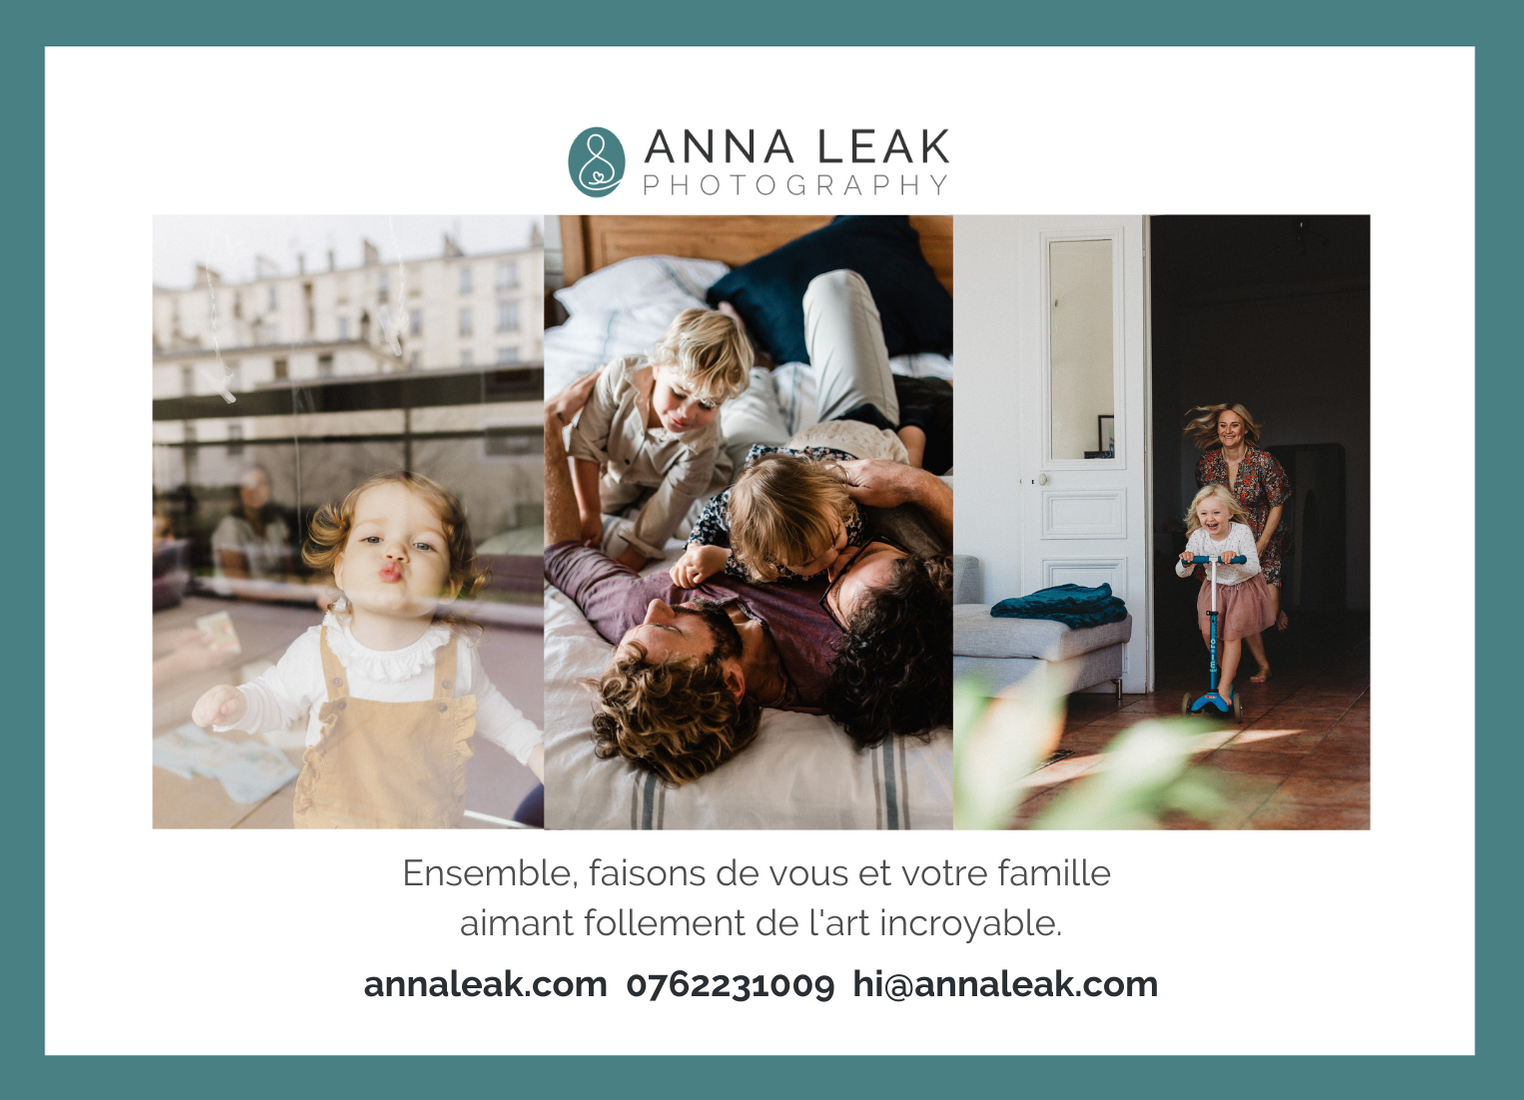 Anna leak photography